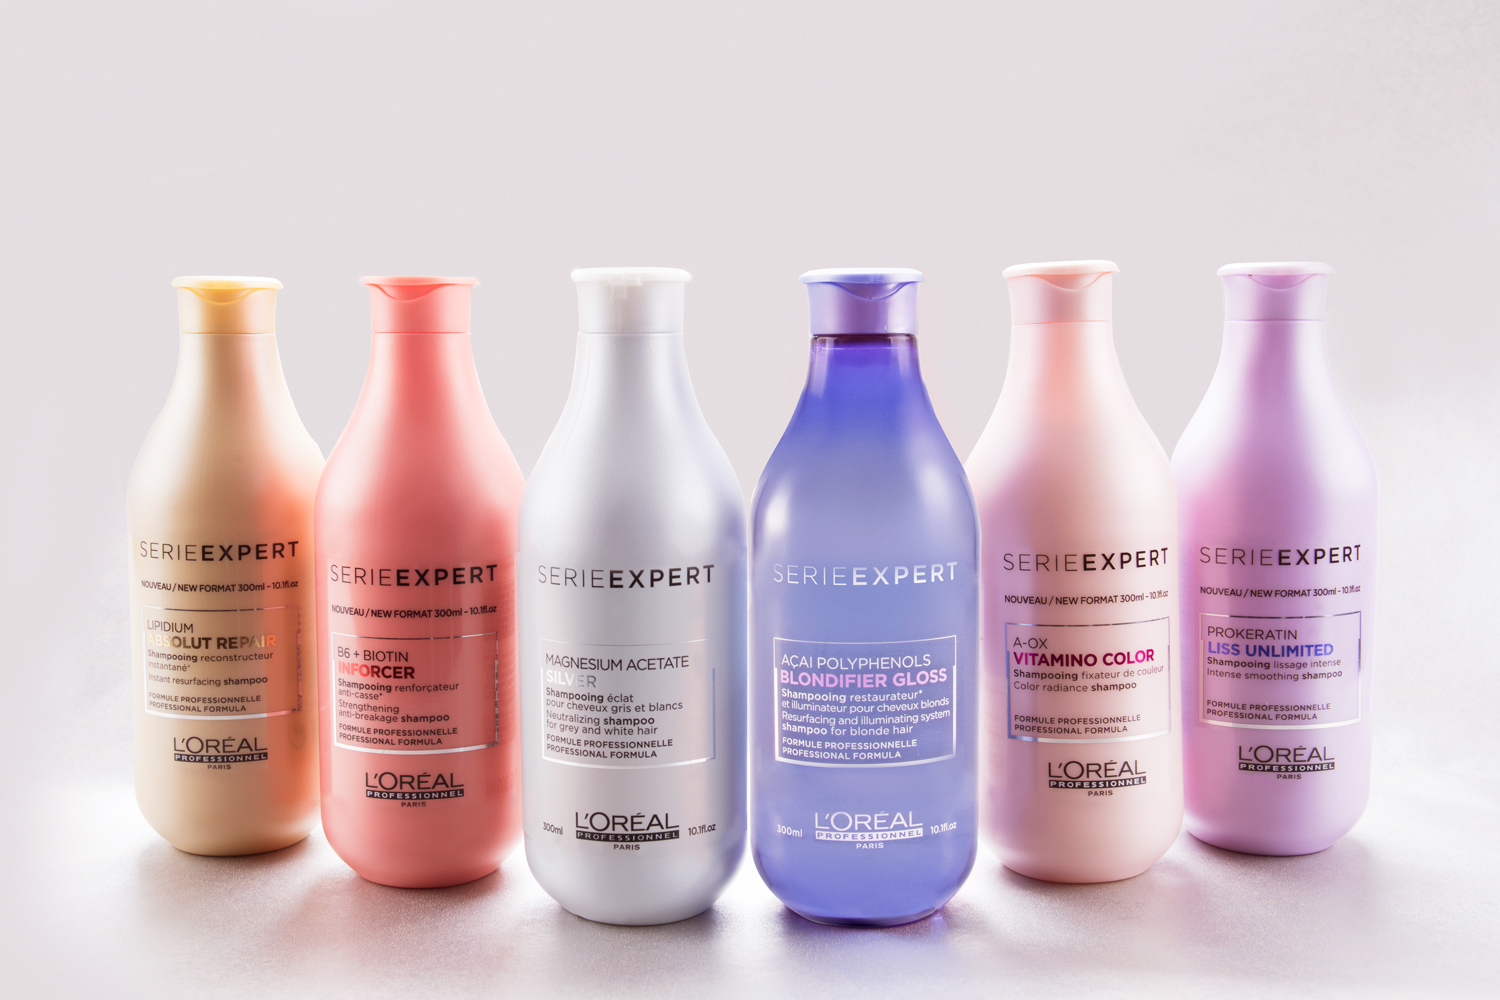 SerieExpert Haircare Products